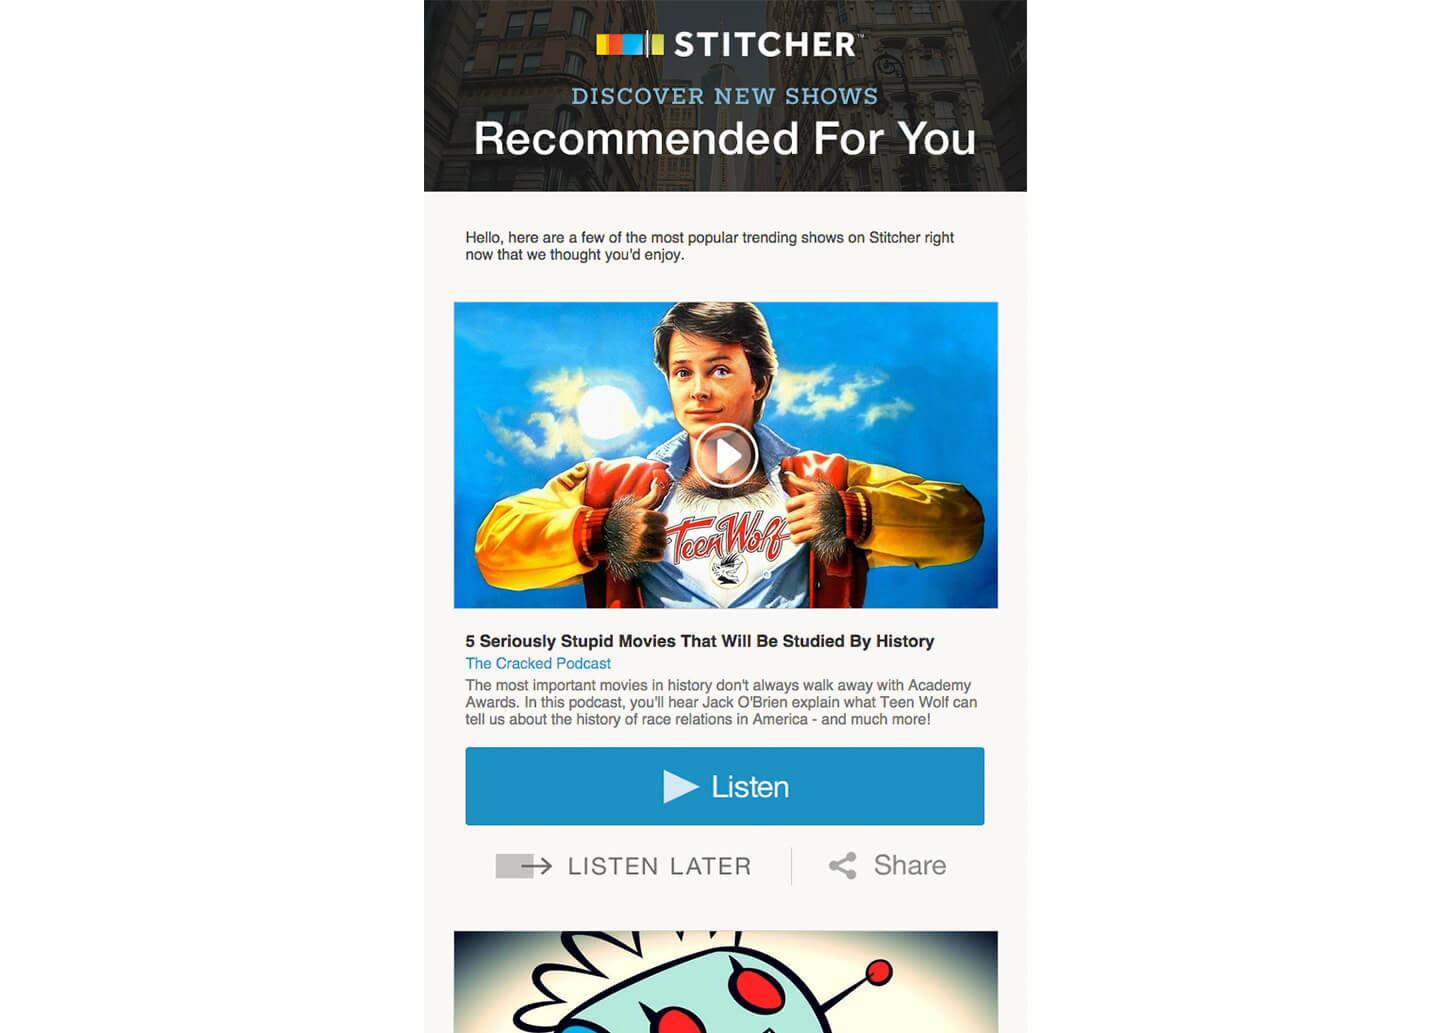 Killer email campaign